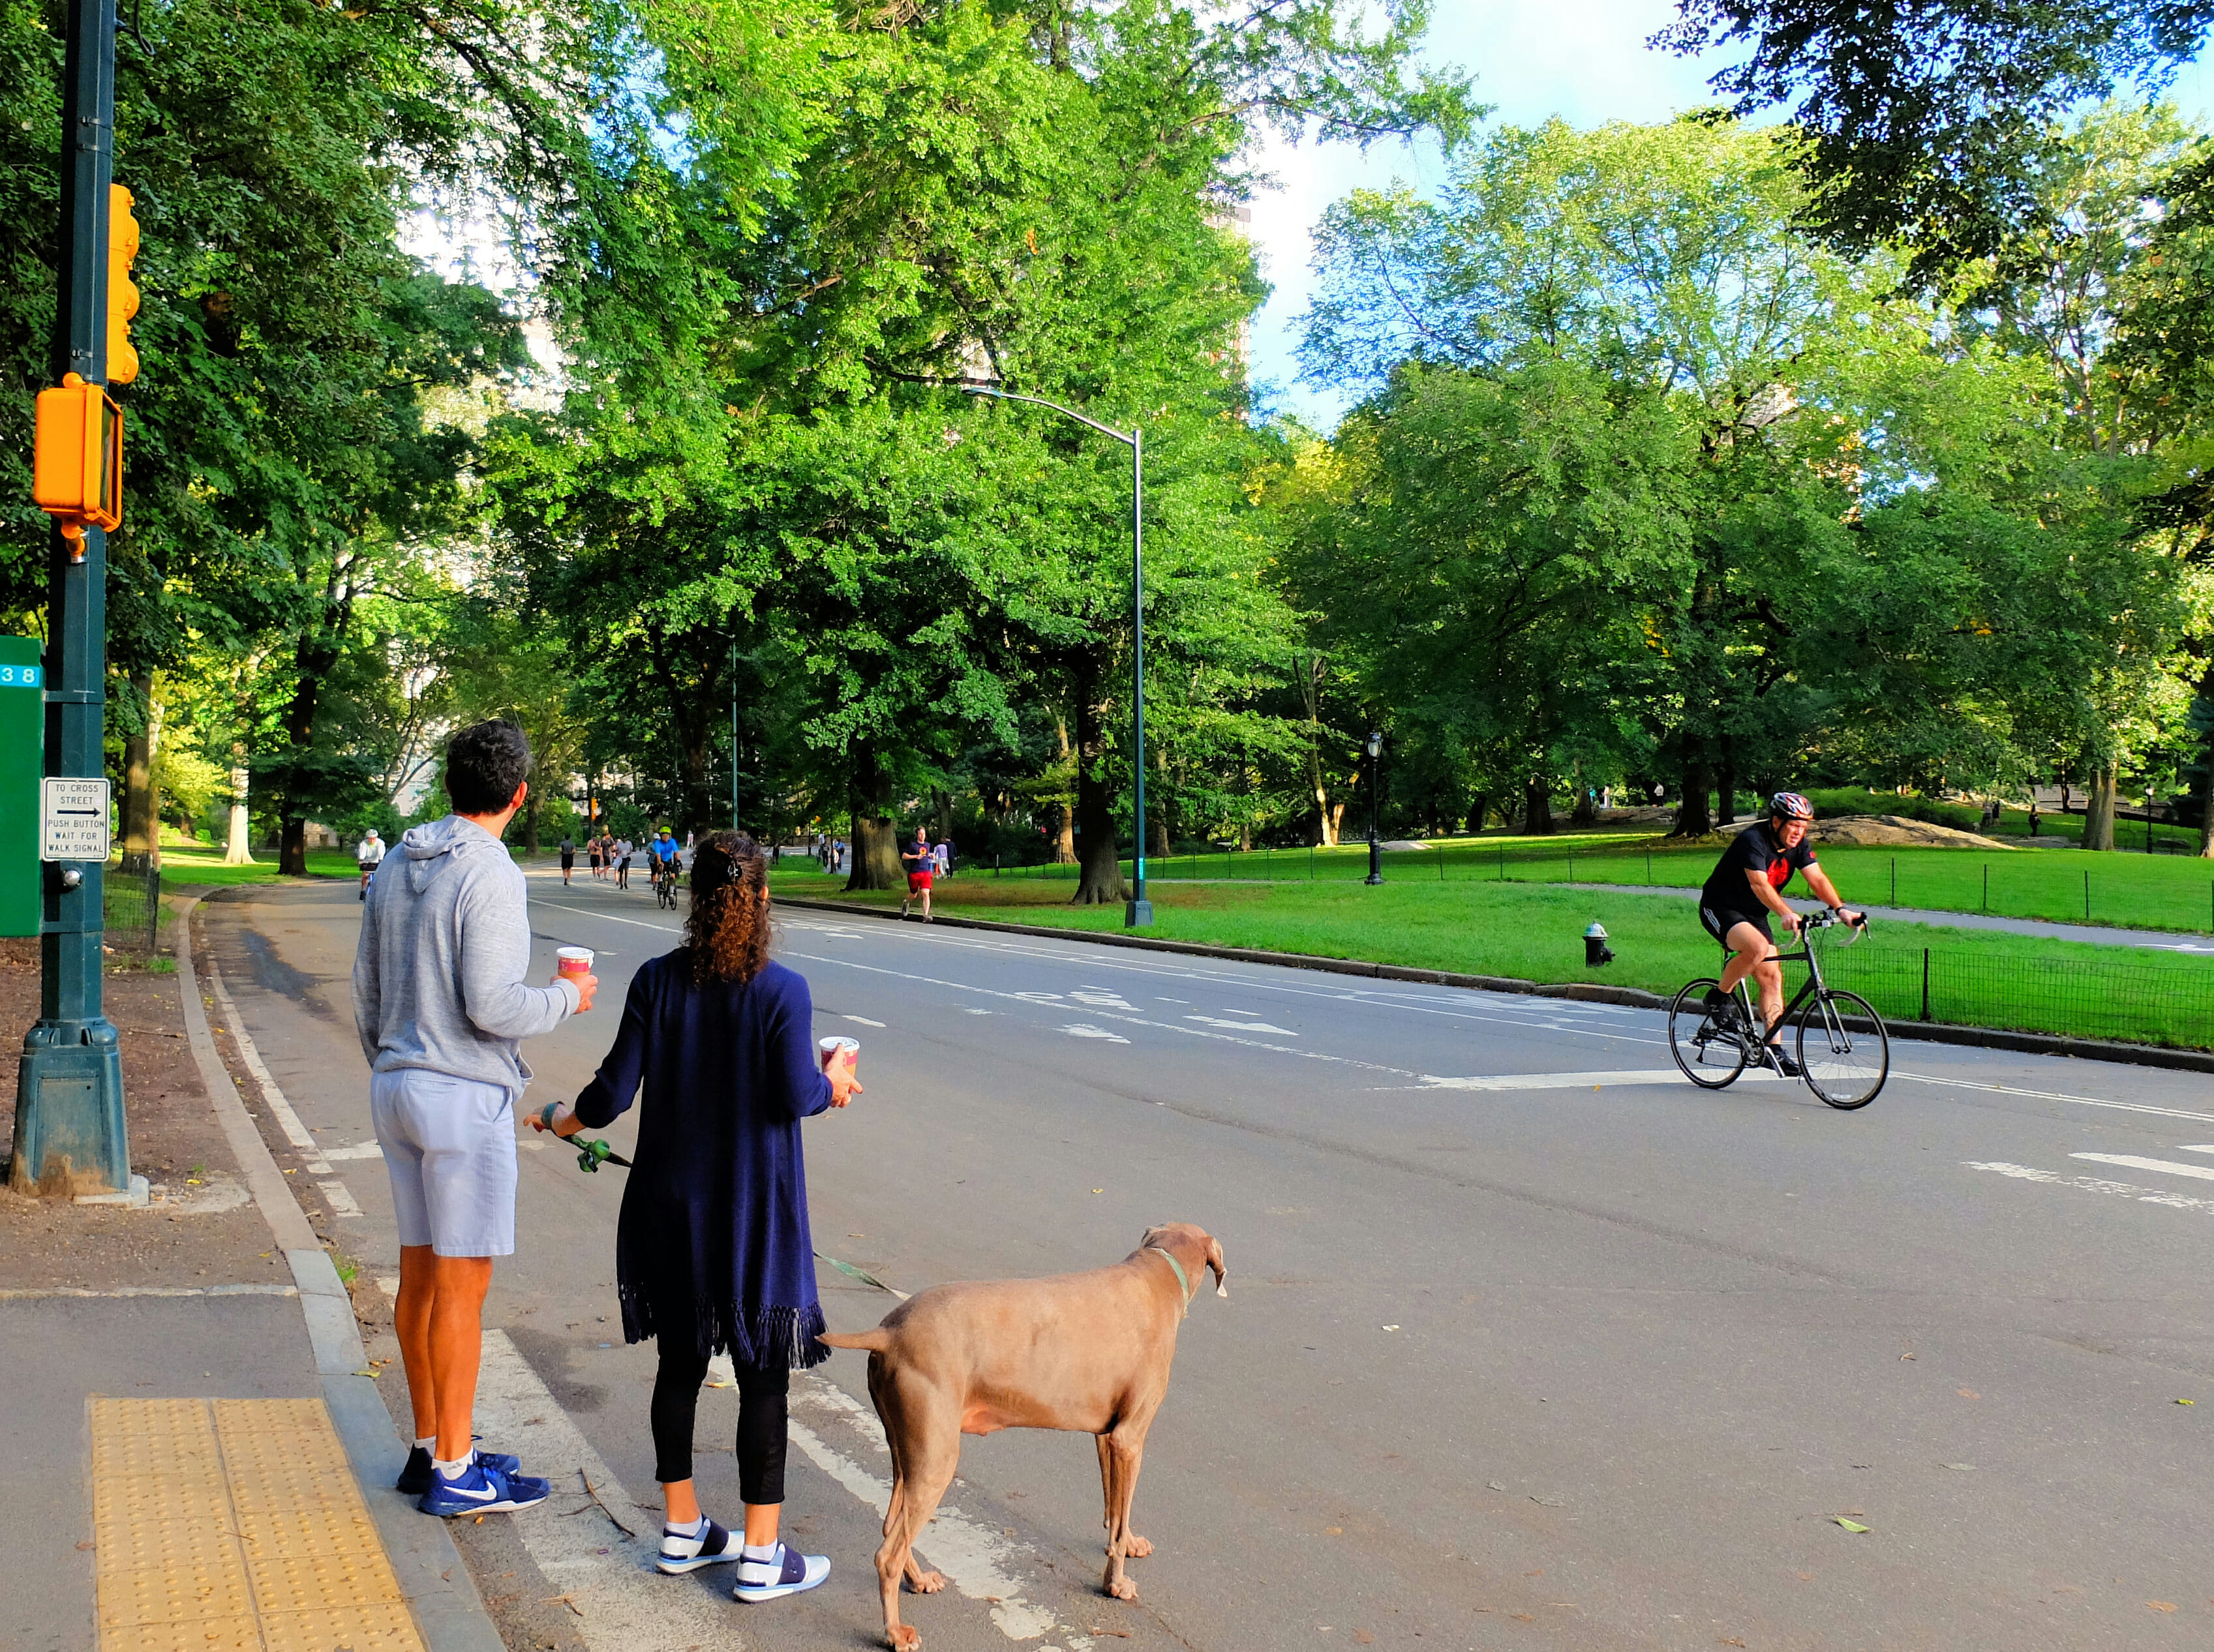 Biking in Central Park High Quality Wallpaper